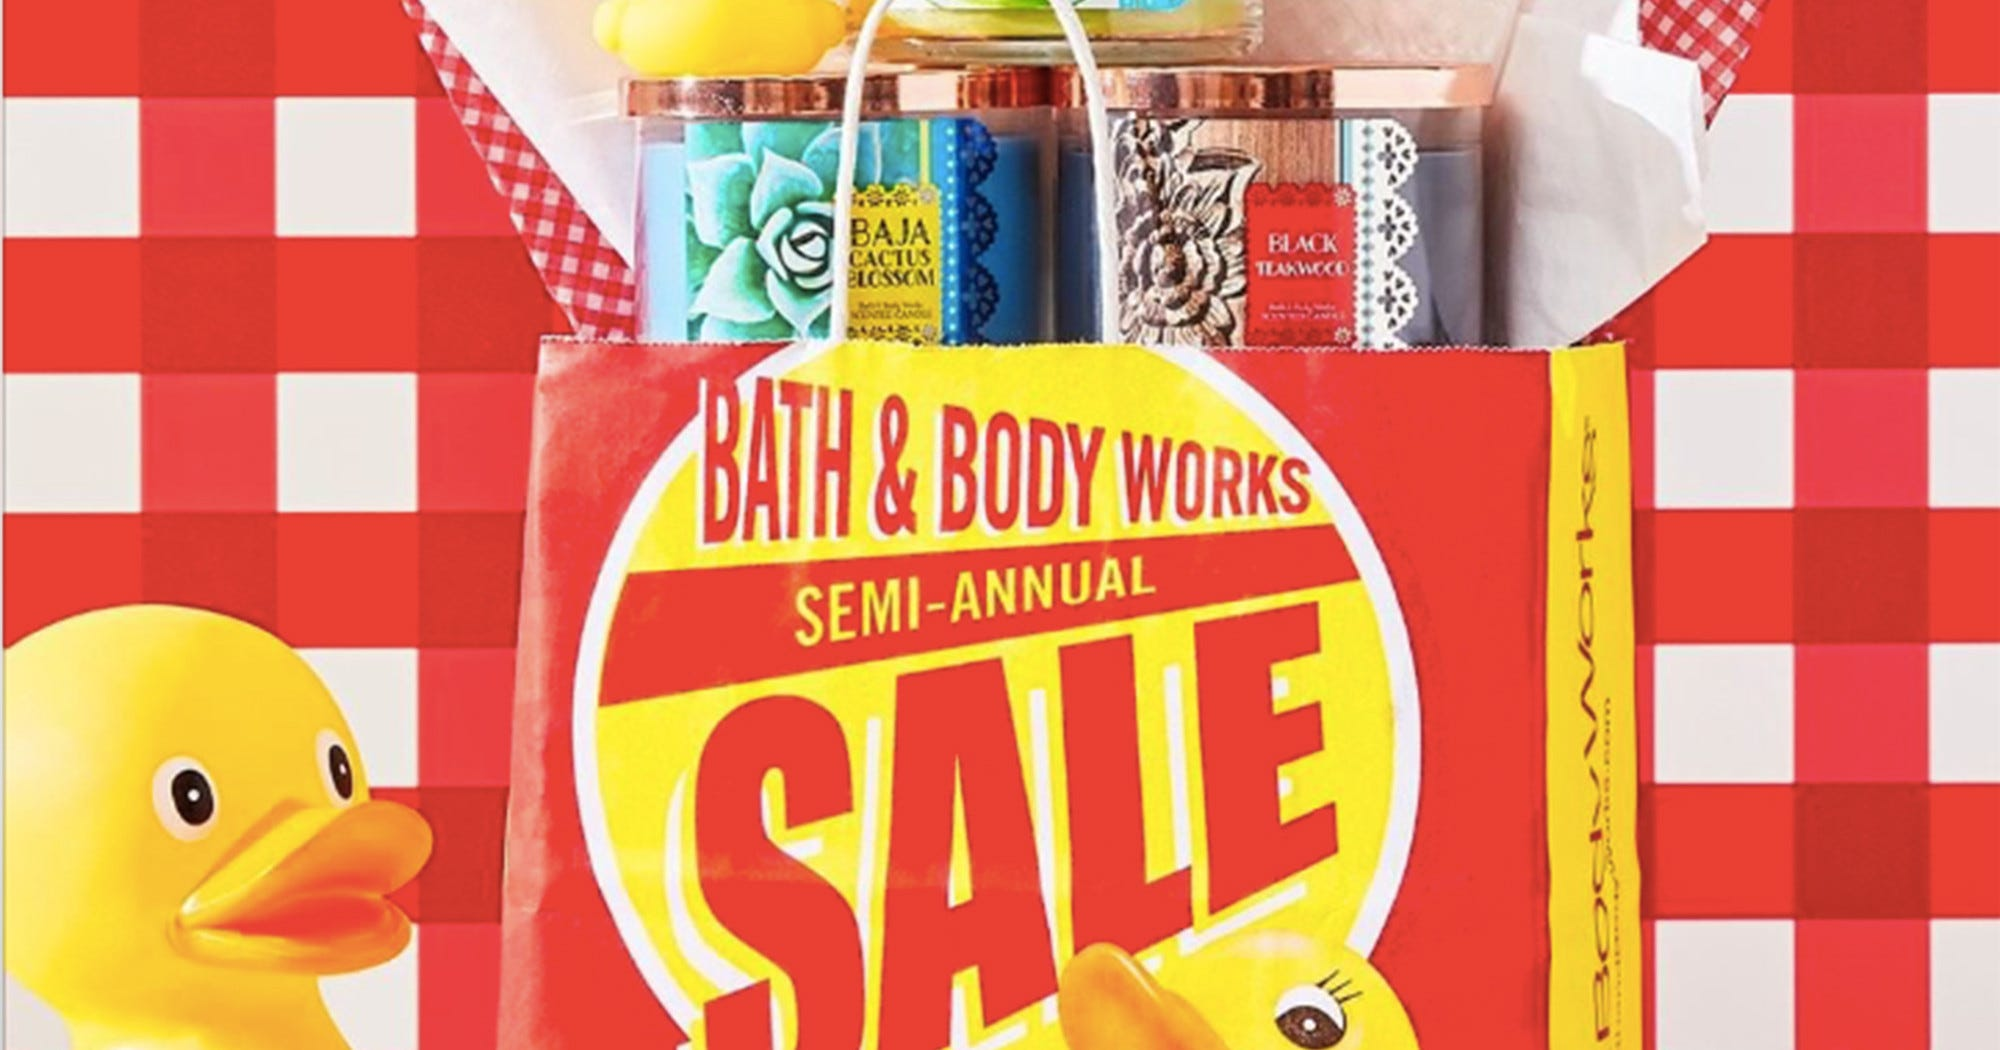 Bath & Body Works Just Dropped The Biggest Sale Of 2019